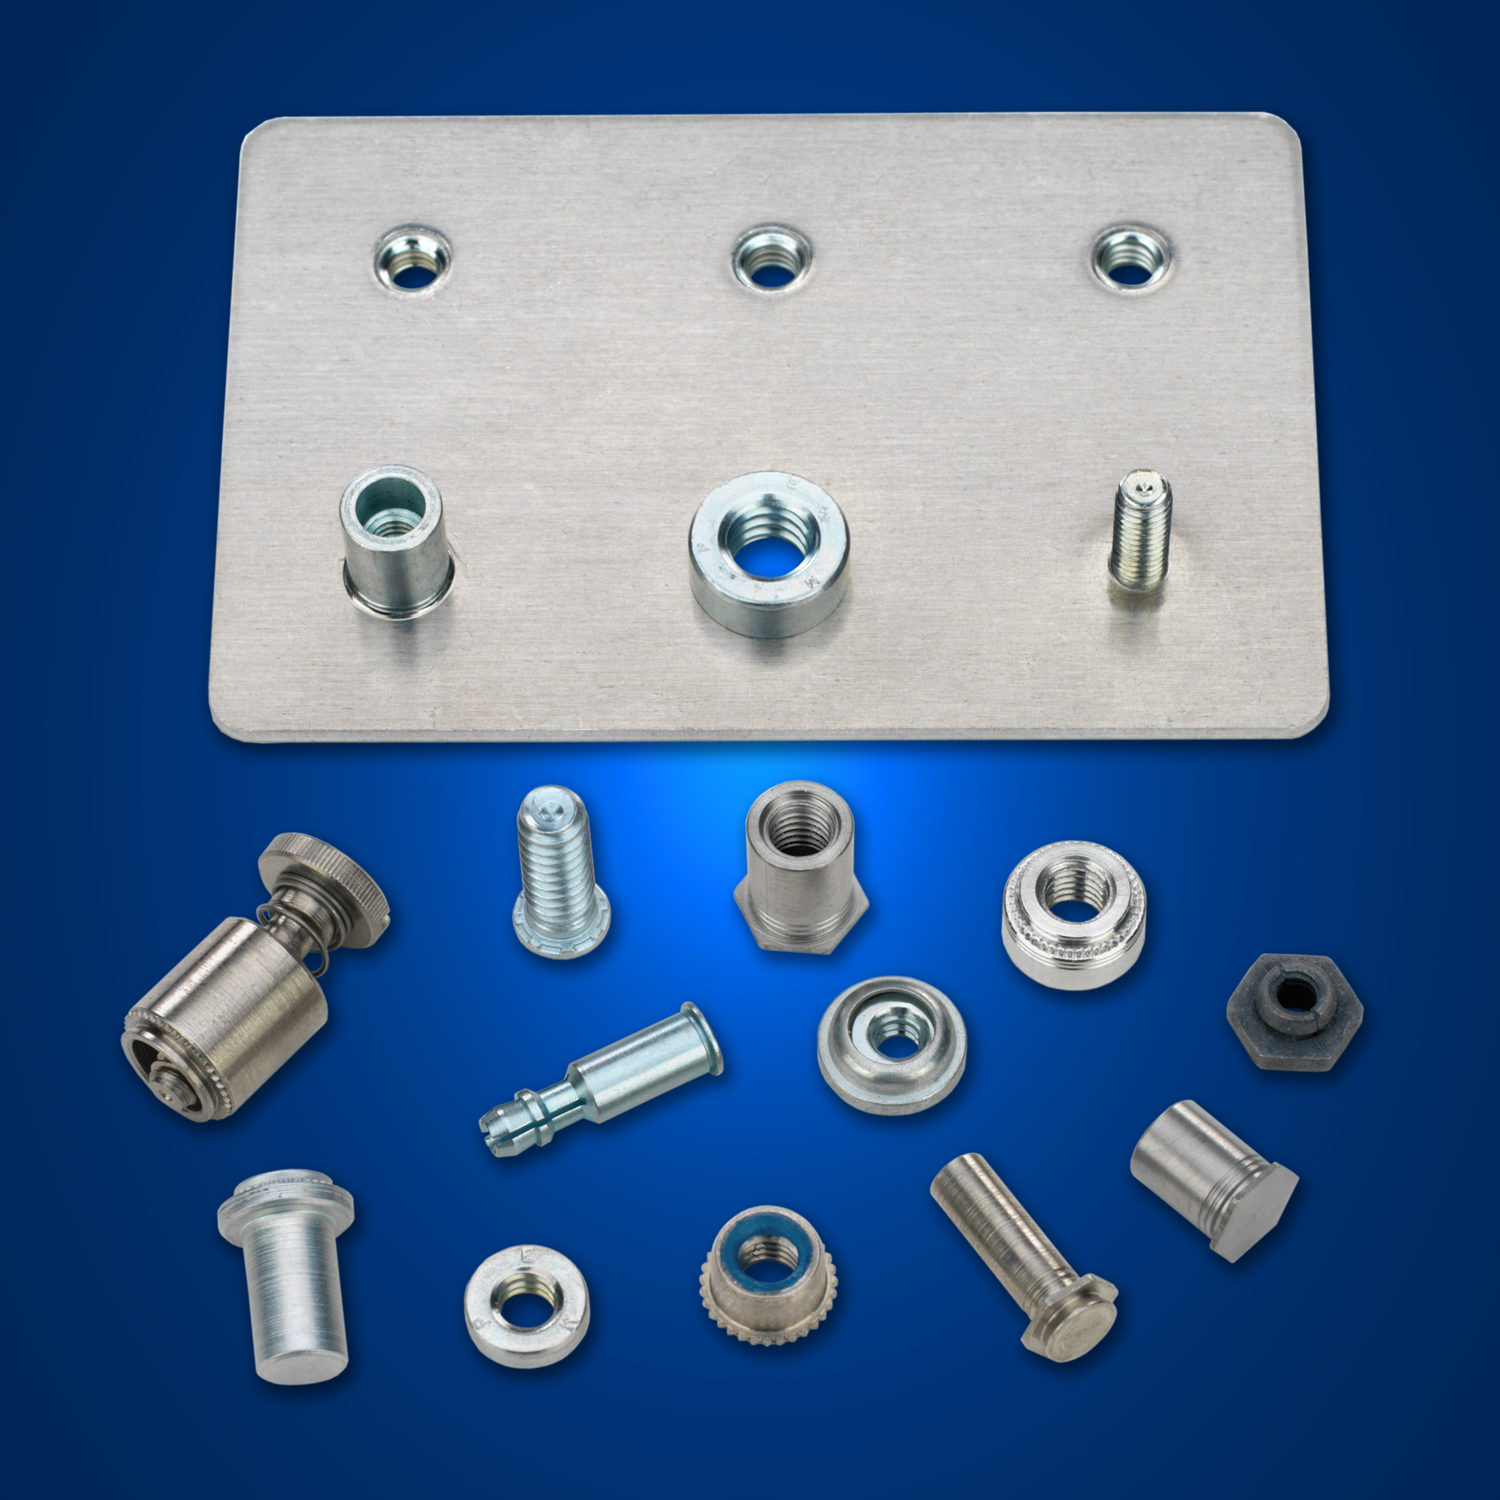 sheet s zinc metal nuts screws bolts plated fasteners machine resize head washers for blind fillister htm slotted blinds